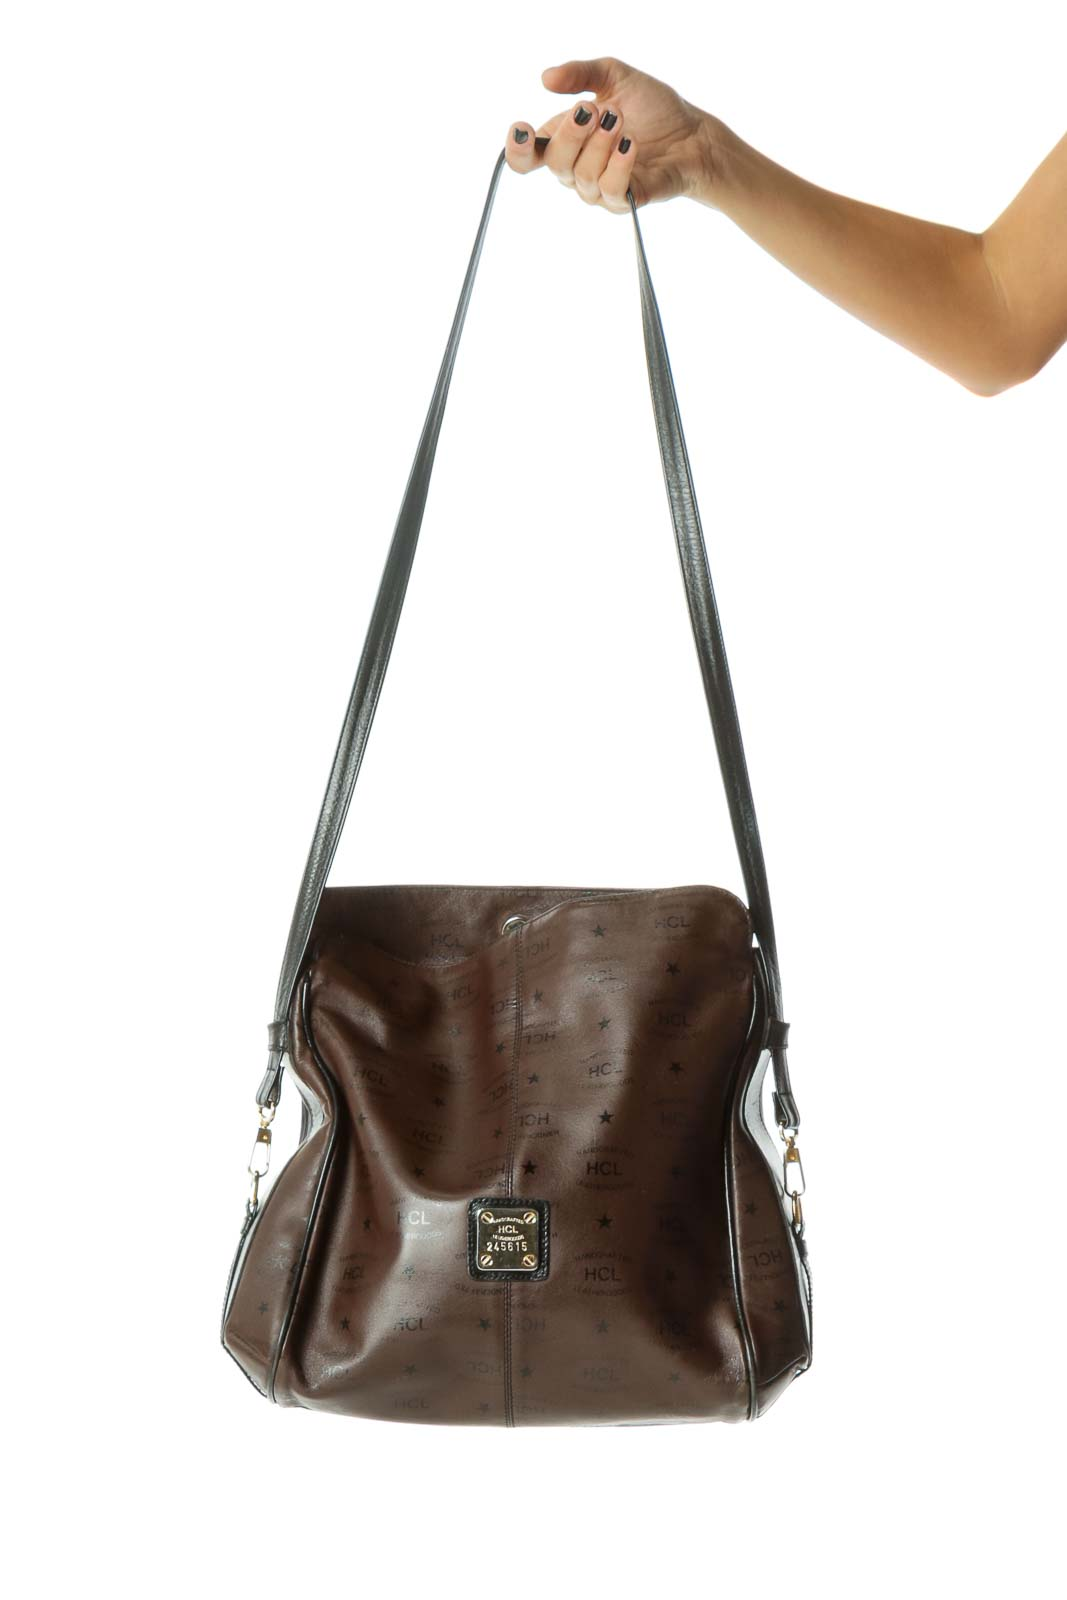 Brown Black Gold Hardware Brand Printing Leather Crossbody Bag